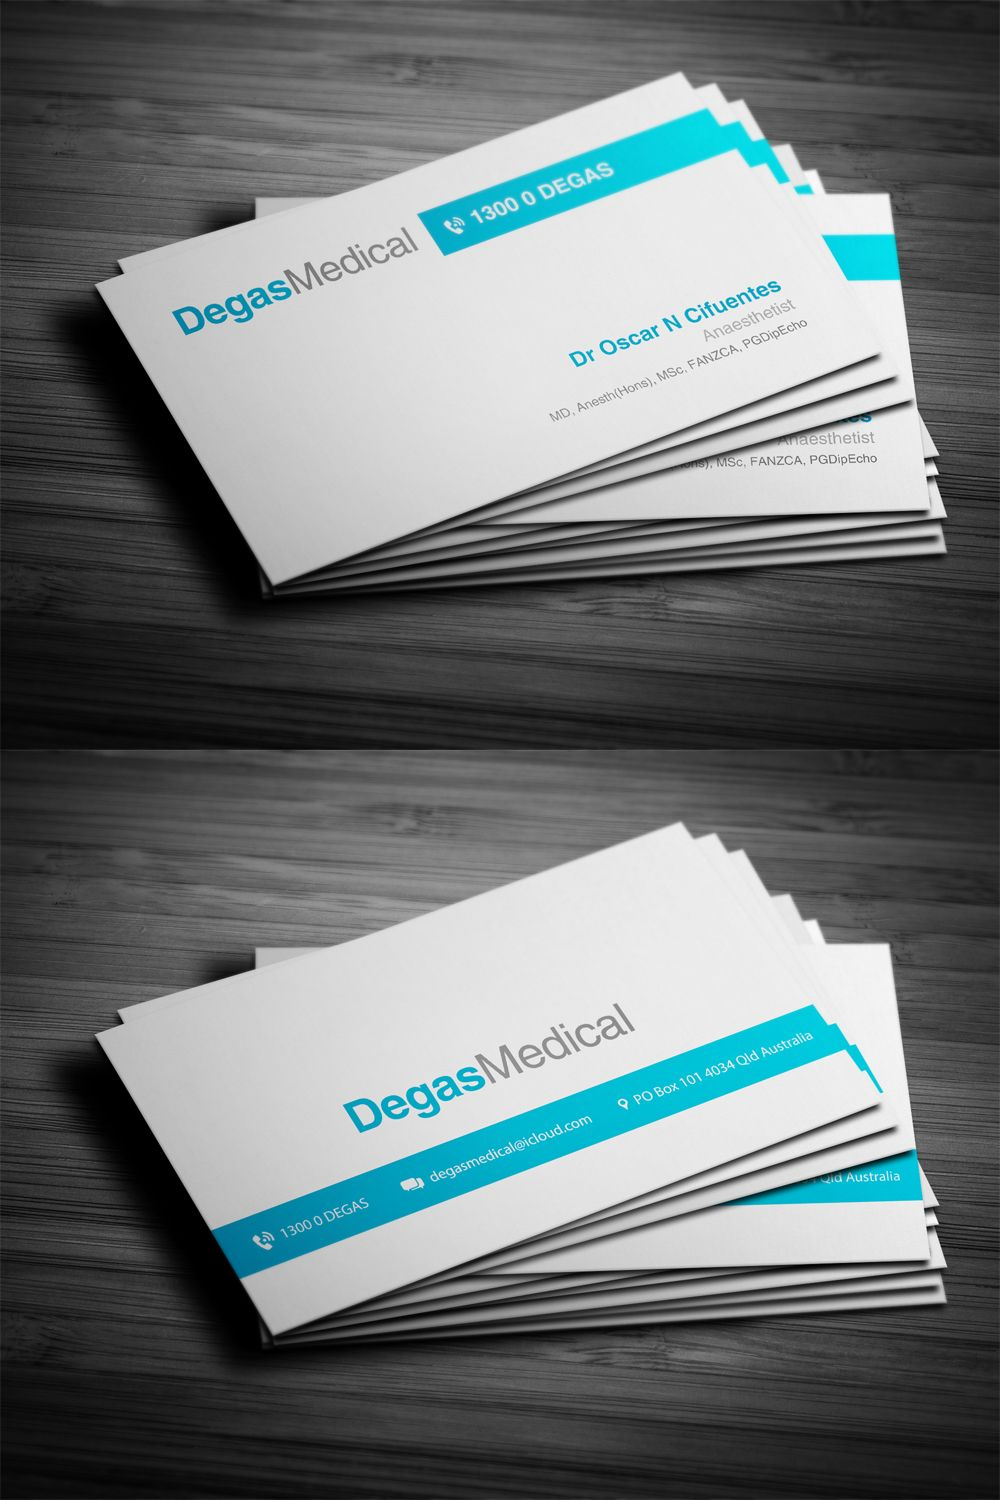 Business Card - Degas Medical | Business Card Design | Pinterest ...